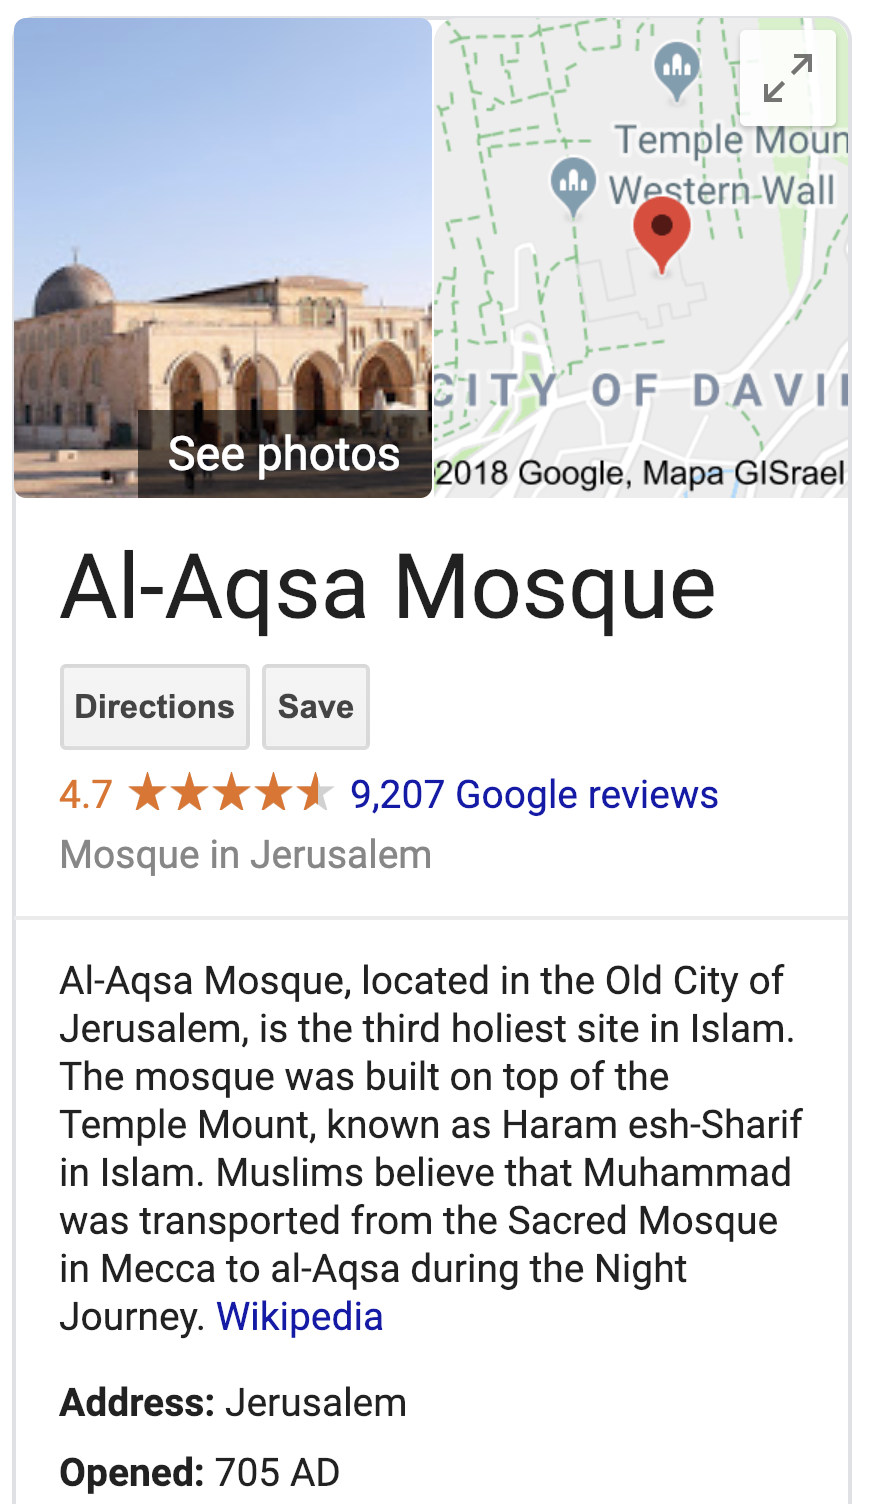 free to find truth: 42 66 141 183 | Al-Aqsa Mosque, the most likely